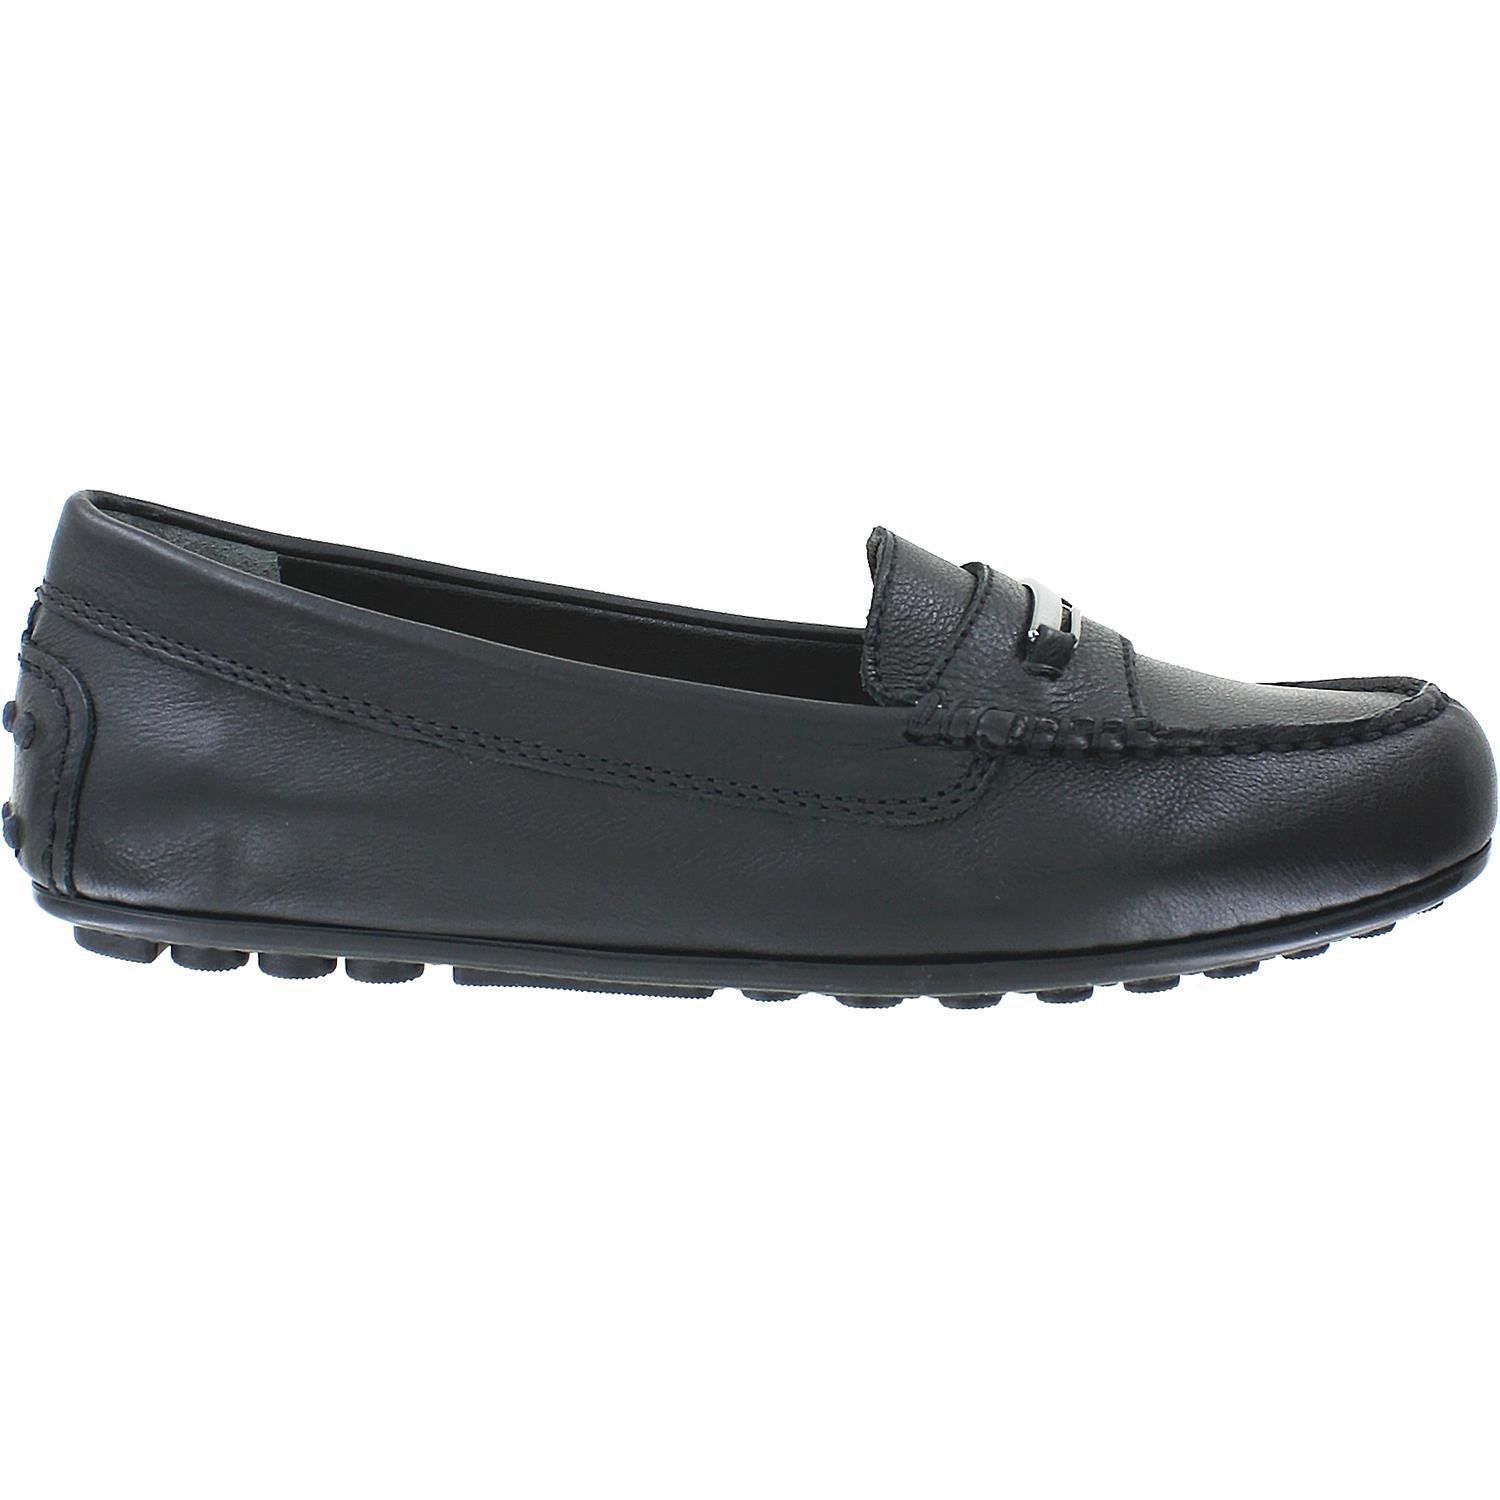 Vionic New Women's Honor Ashby Loafer Black 9 by Vionic